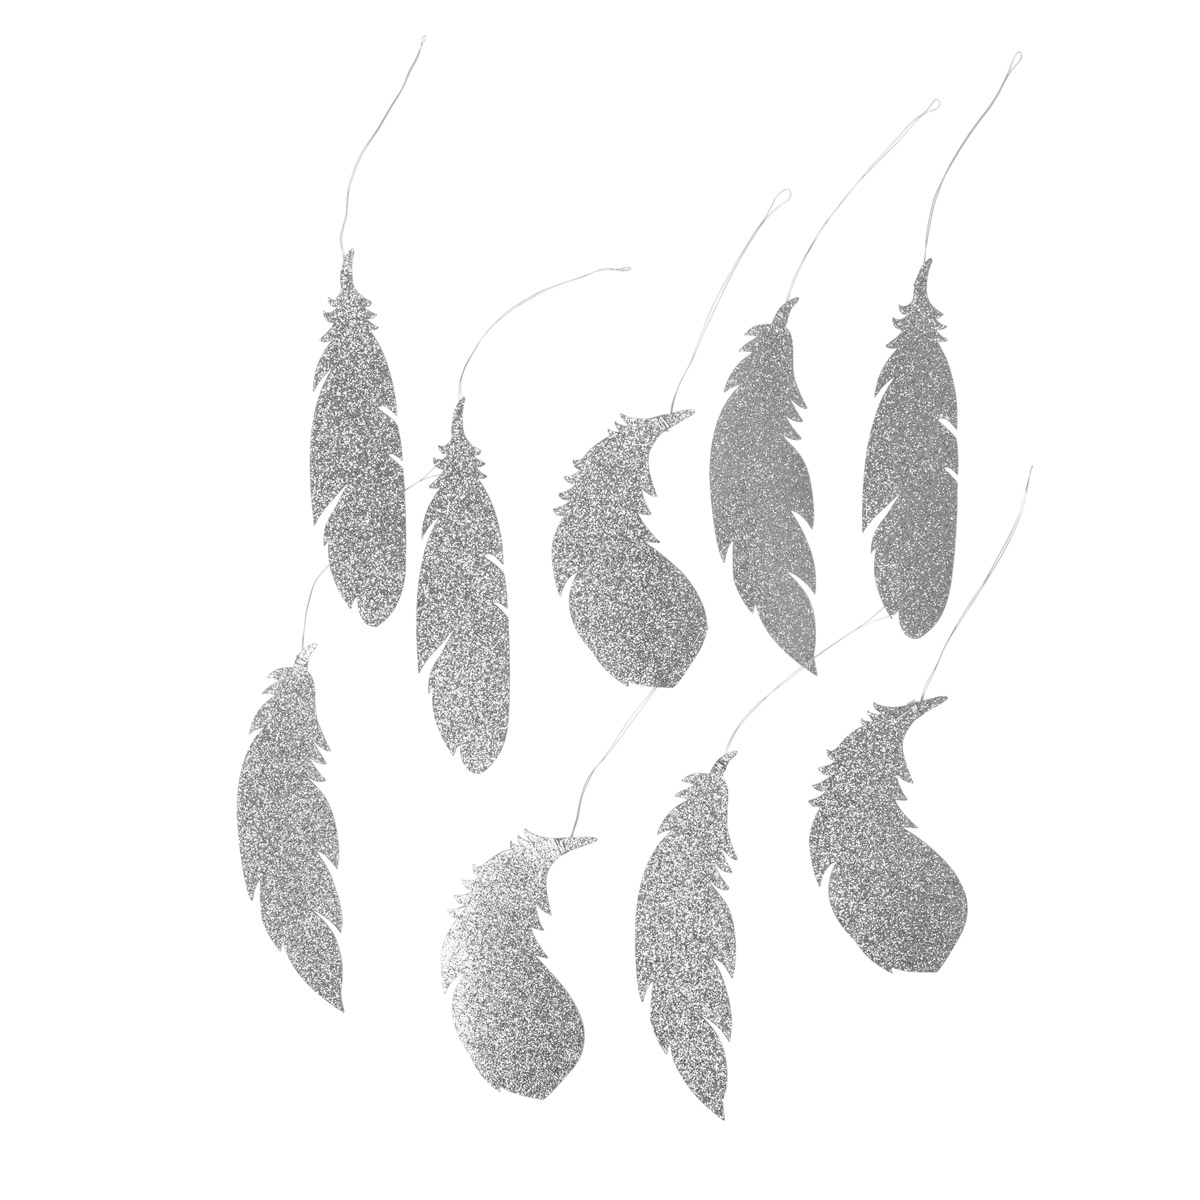 14581470-Deco-Paper-Feathers-in-Silver